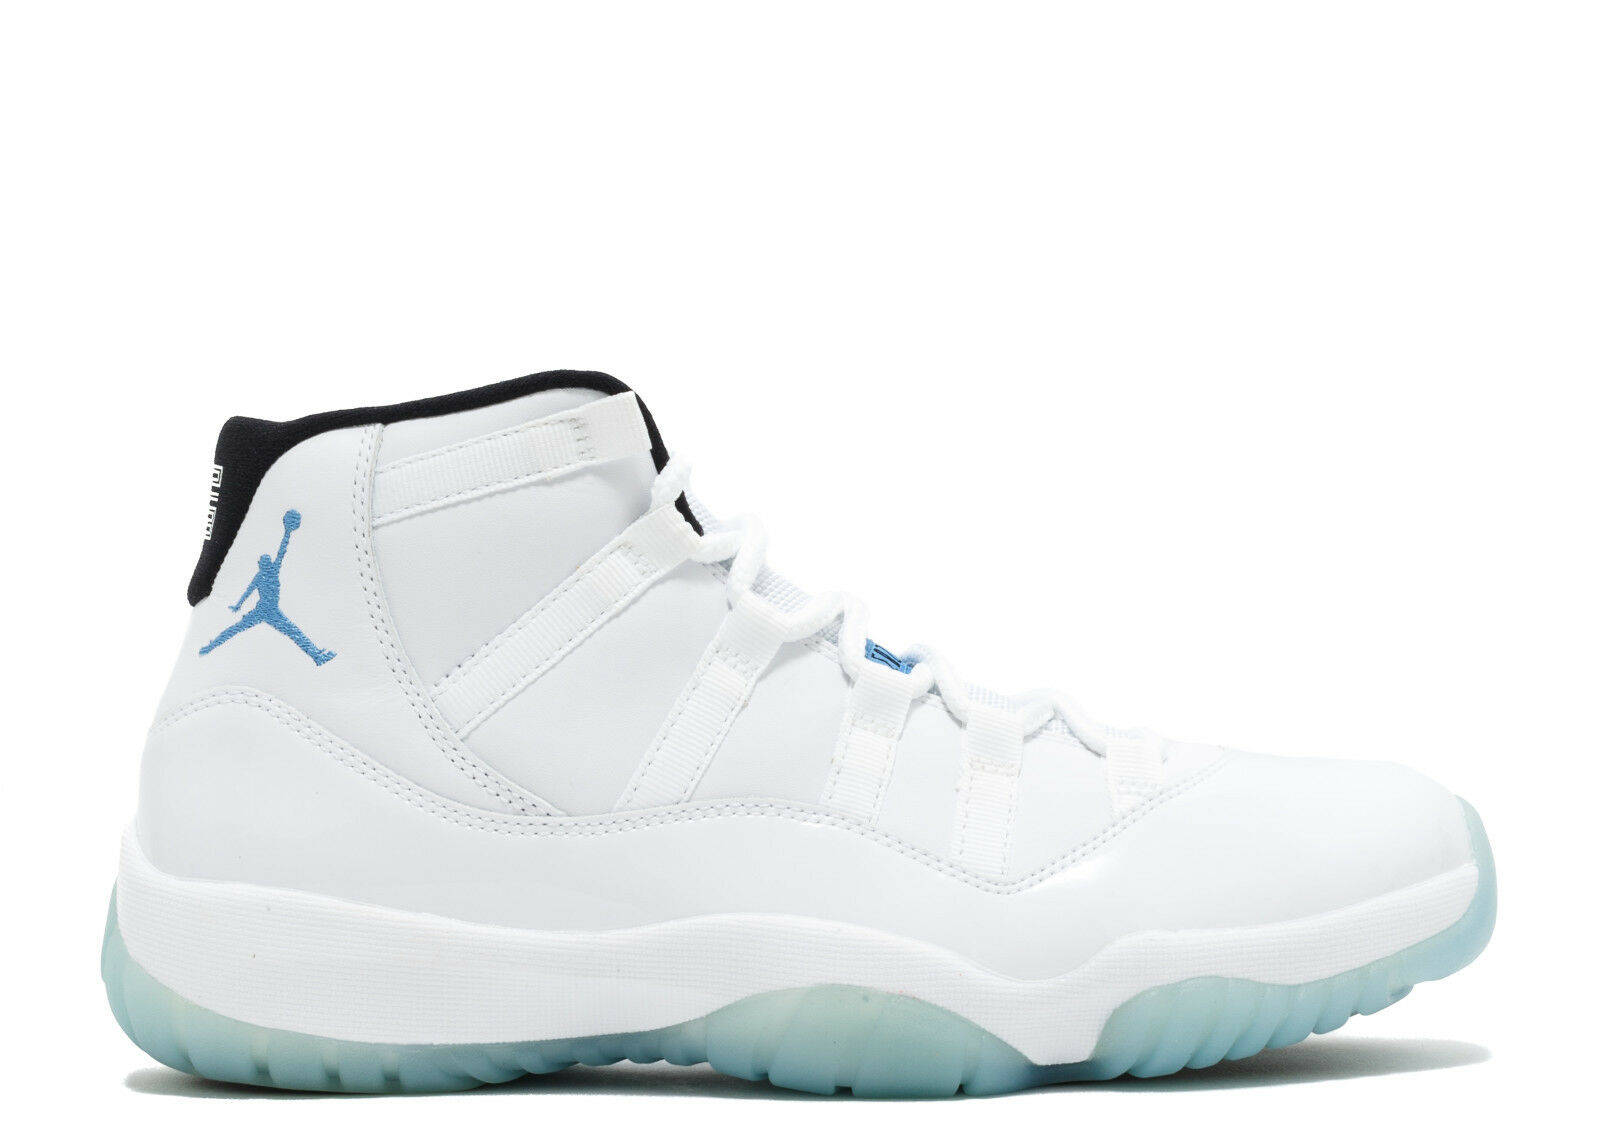 AIR JORDAN 11 RETRO  LEGEND blueE  378037-117 Size 10.5 Brand New